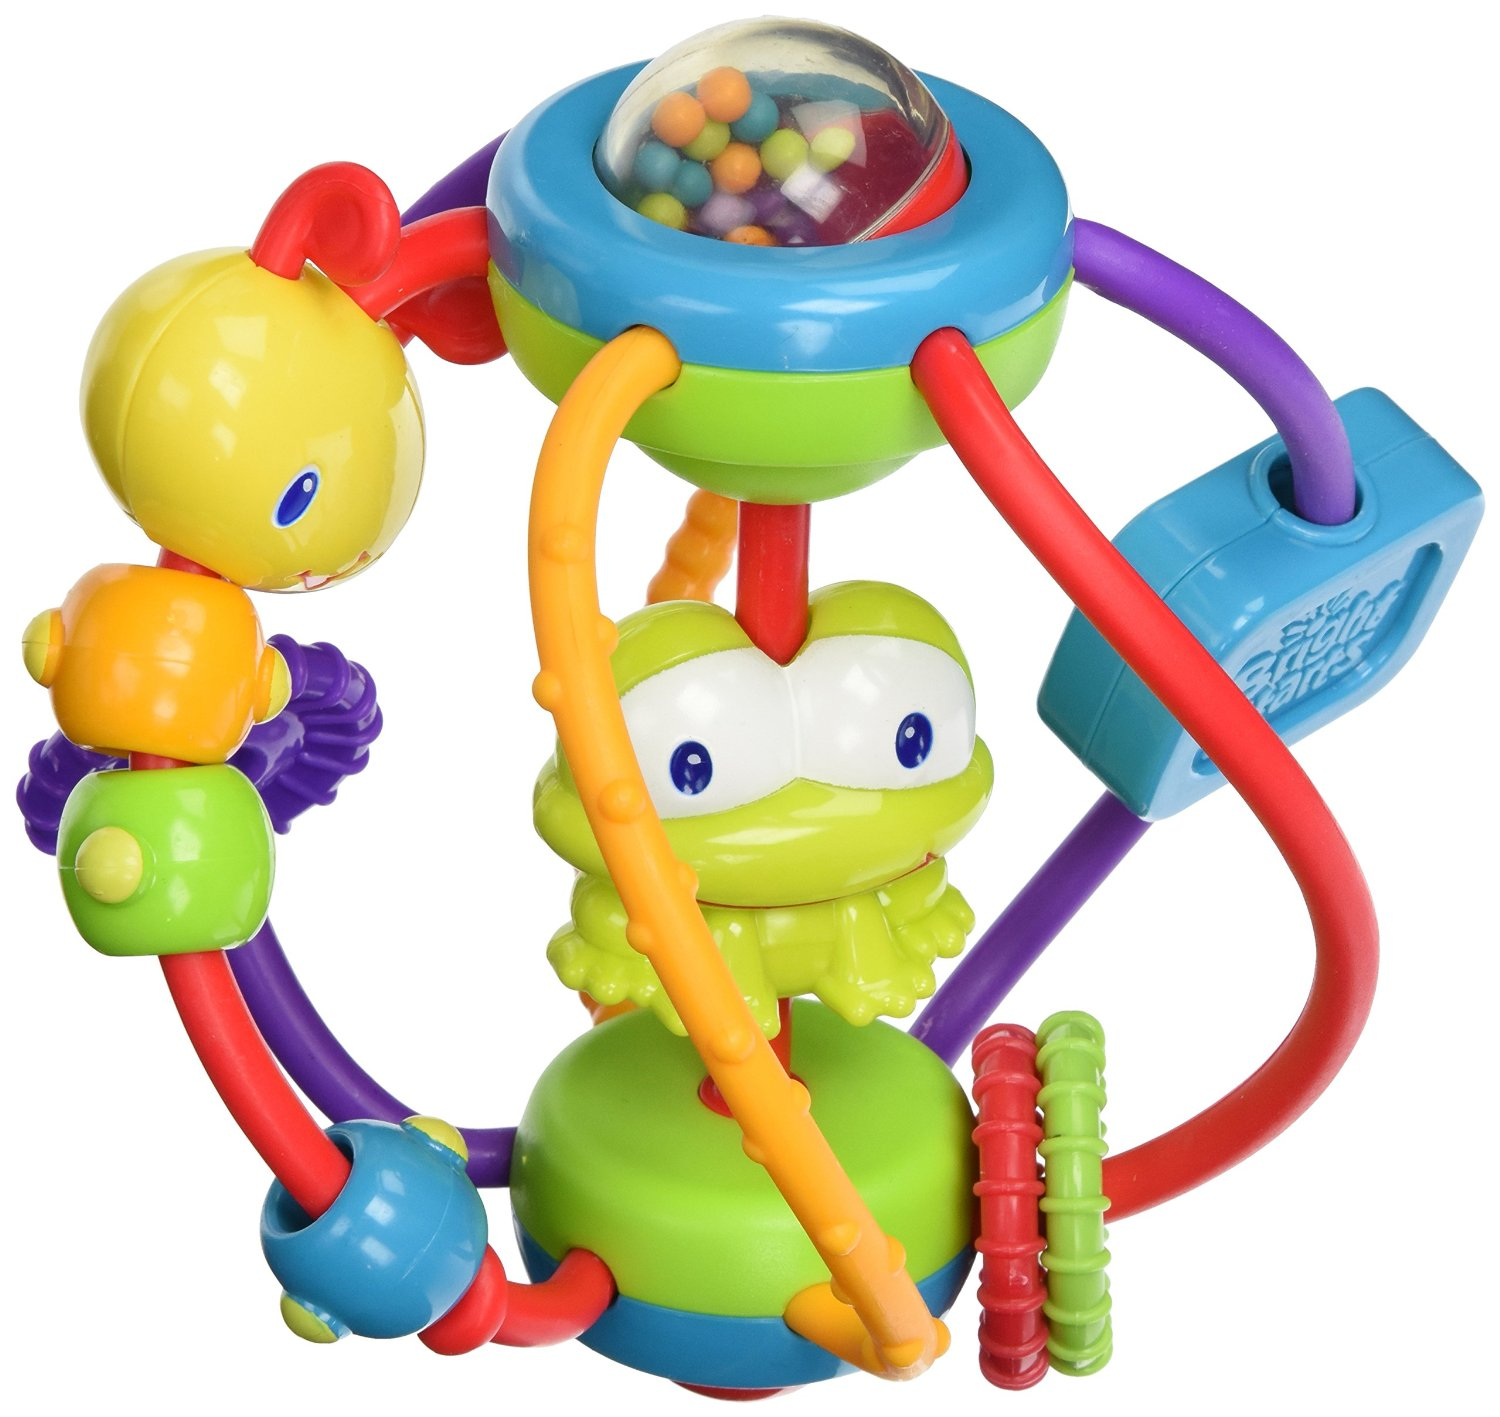 $7.99 Bright Starts Clack and Slide Activity Ball